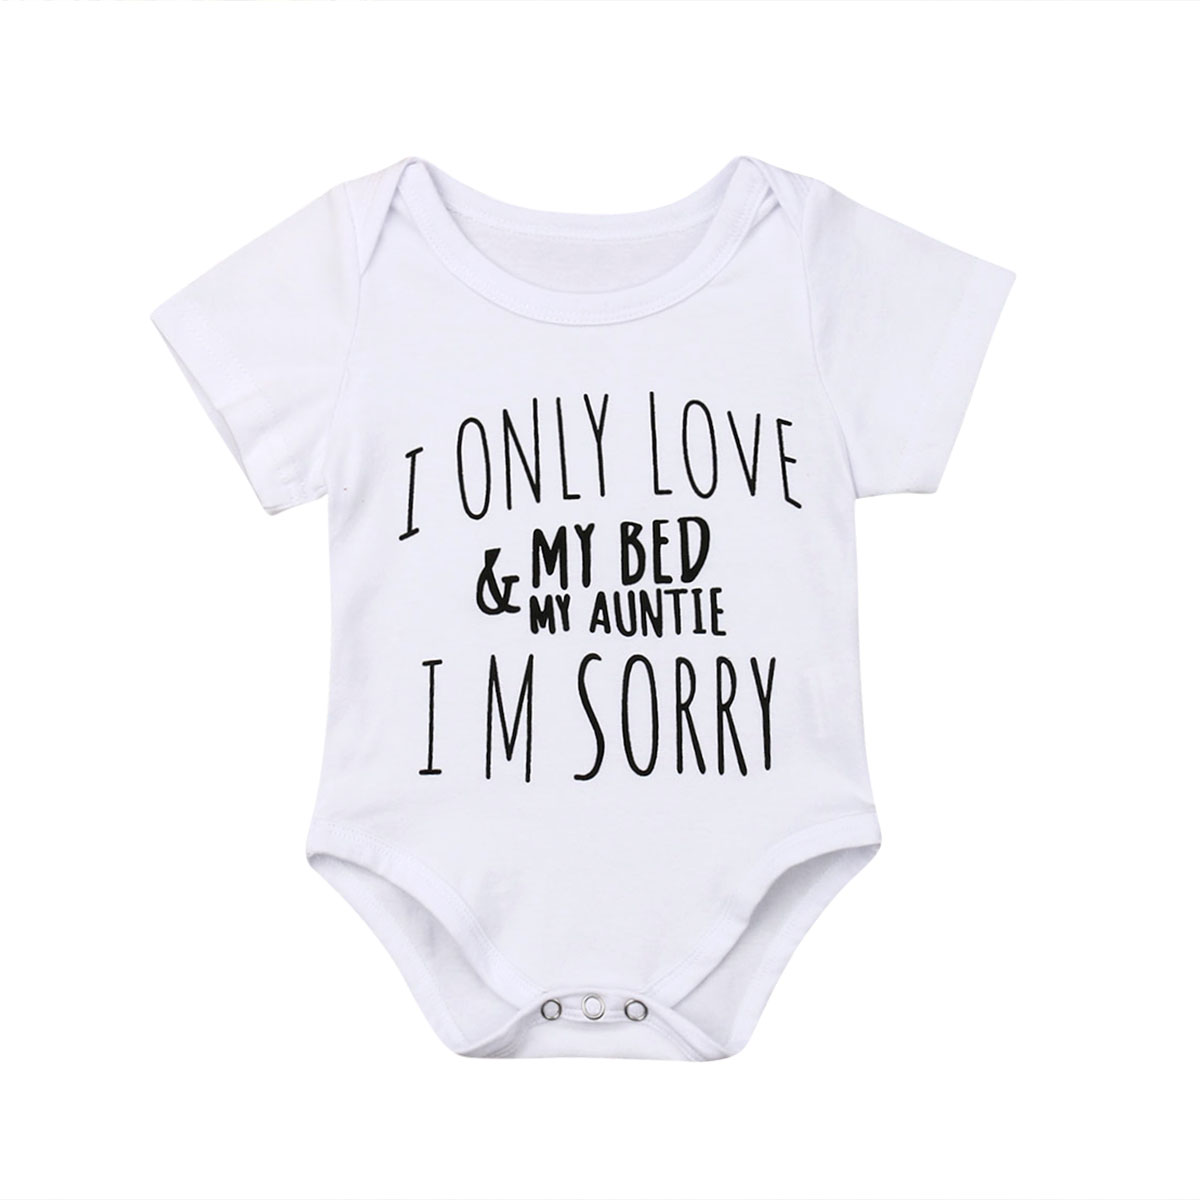 0-18M Kid Newborn Clothes Baby Girl Boy LOVE MY AUNTIE Bodysuit  Short Sleeve Jumper Sunsuit Outfits